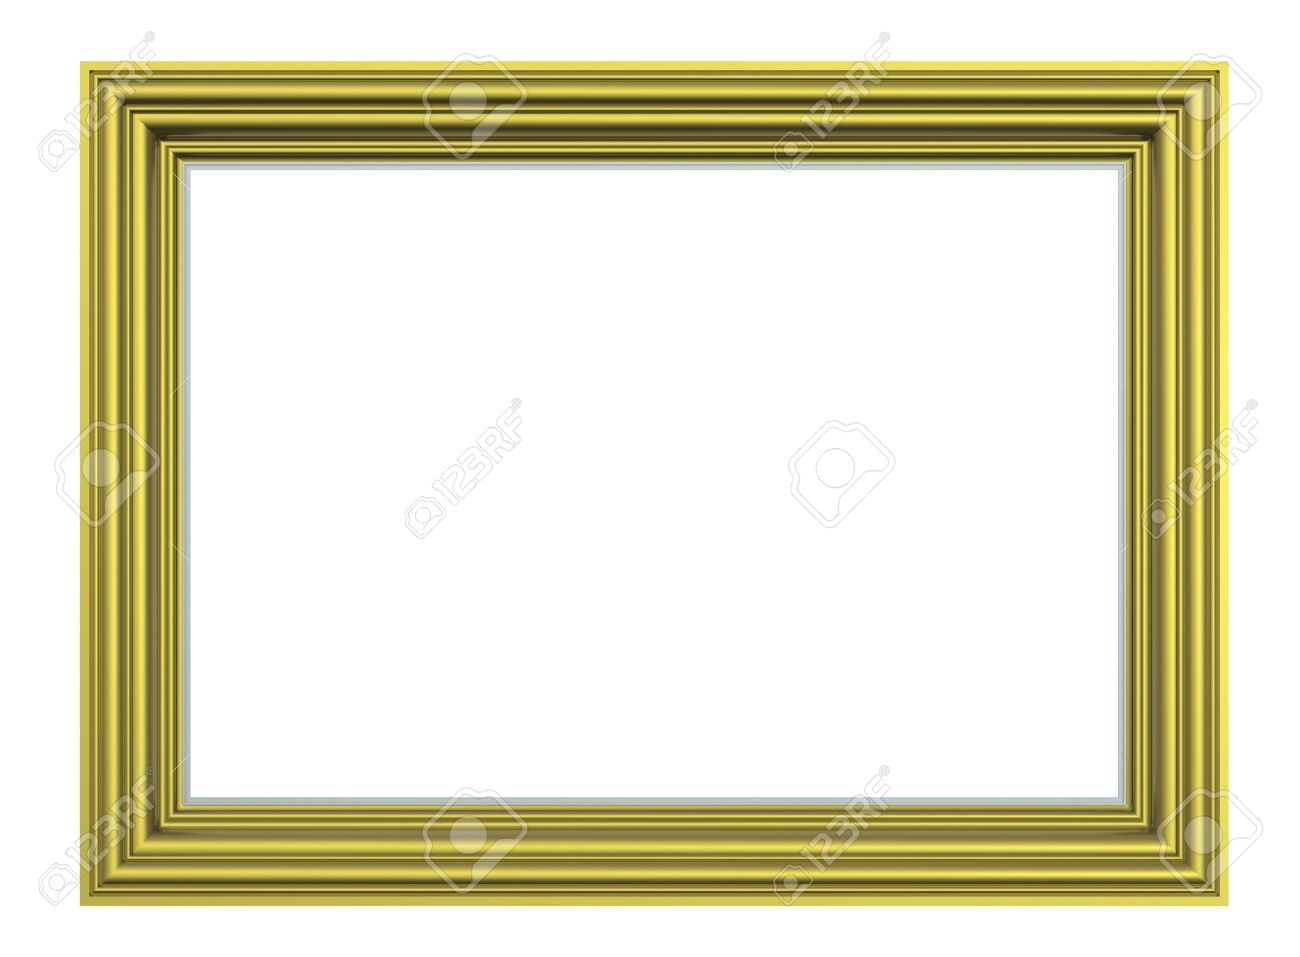 Matt gold rectangular frame isolated on white background. Computer generated 3D photo rendering. Stock Photo - 6528779